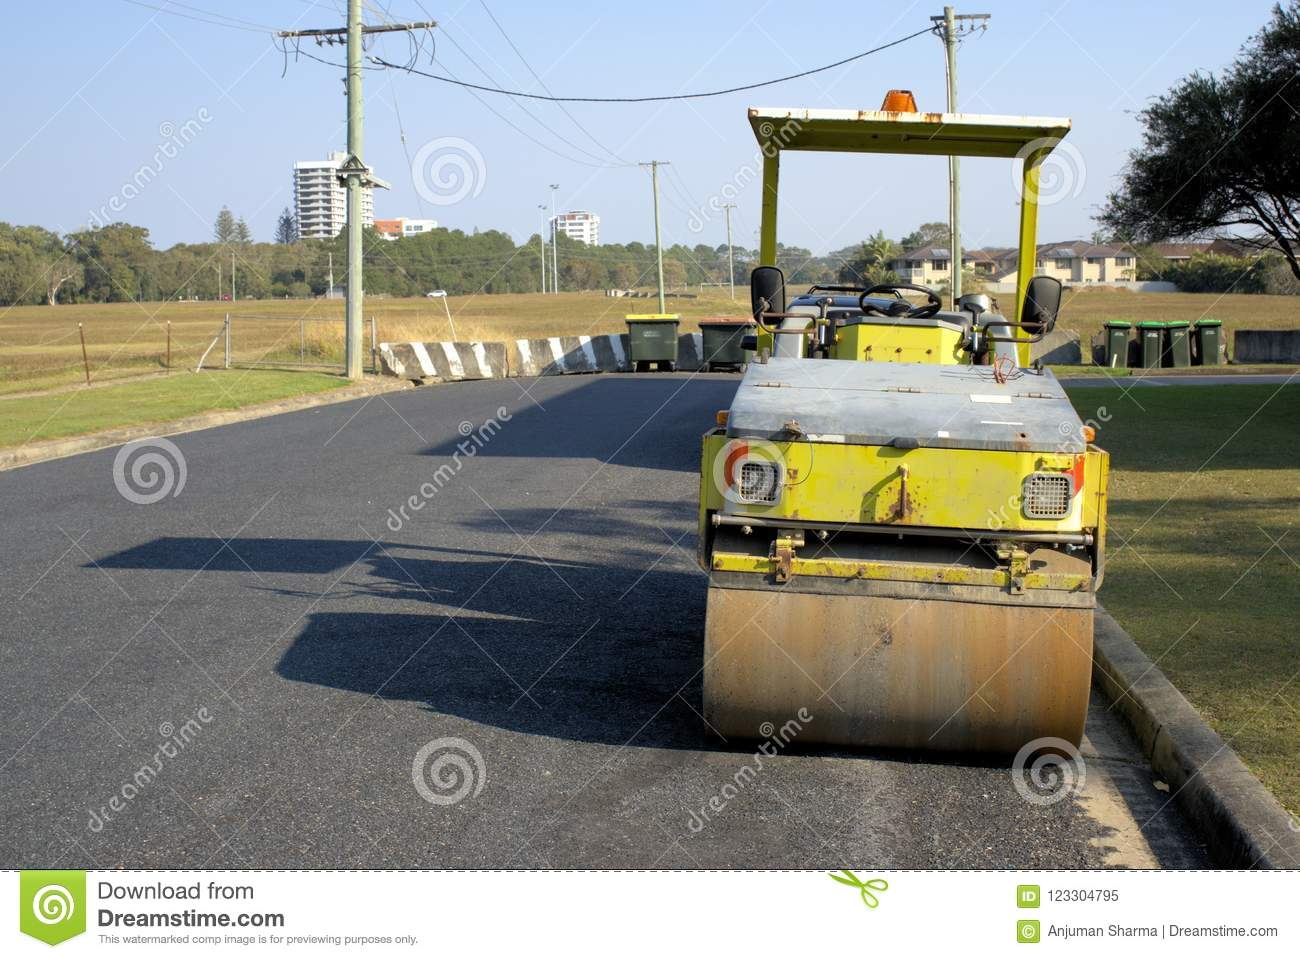 Roller Australia Idle Road Work Machine In Australia Stock Image Image Of Tandem